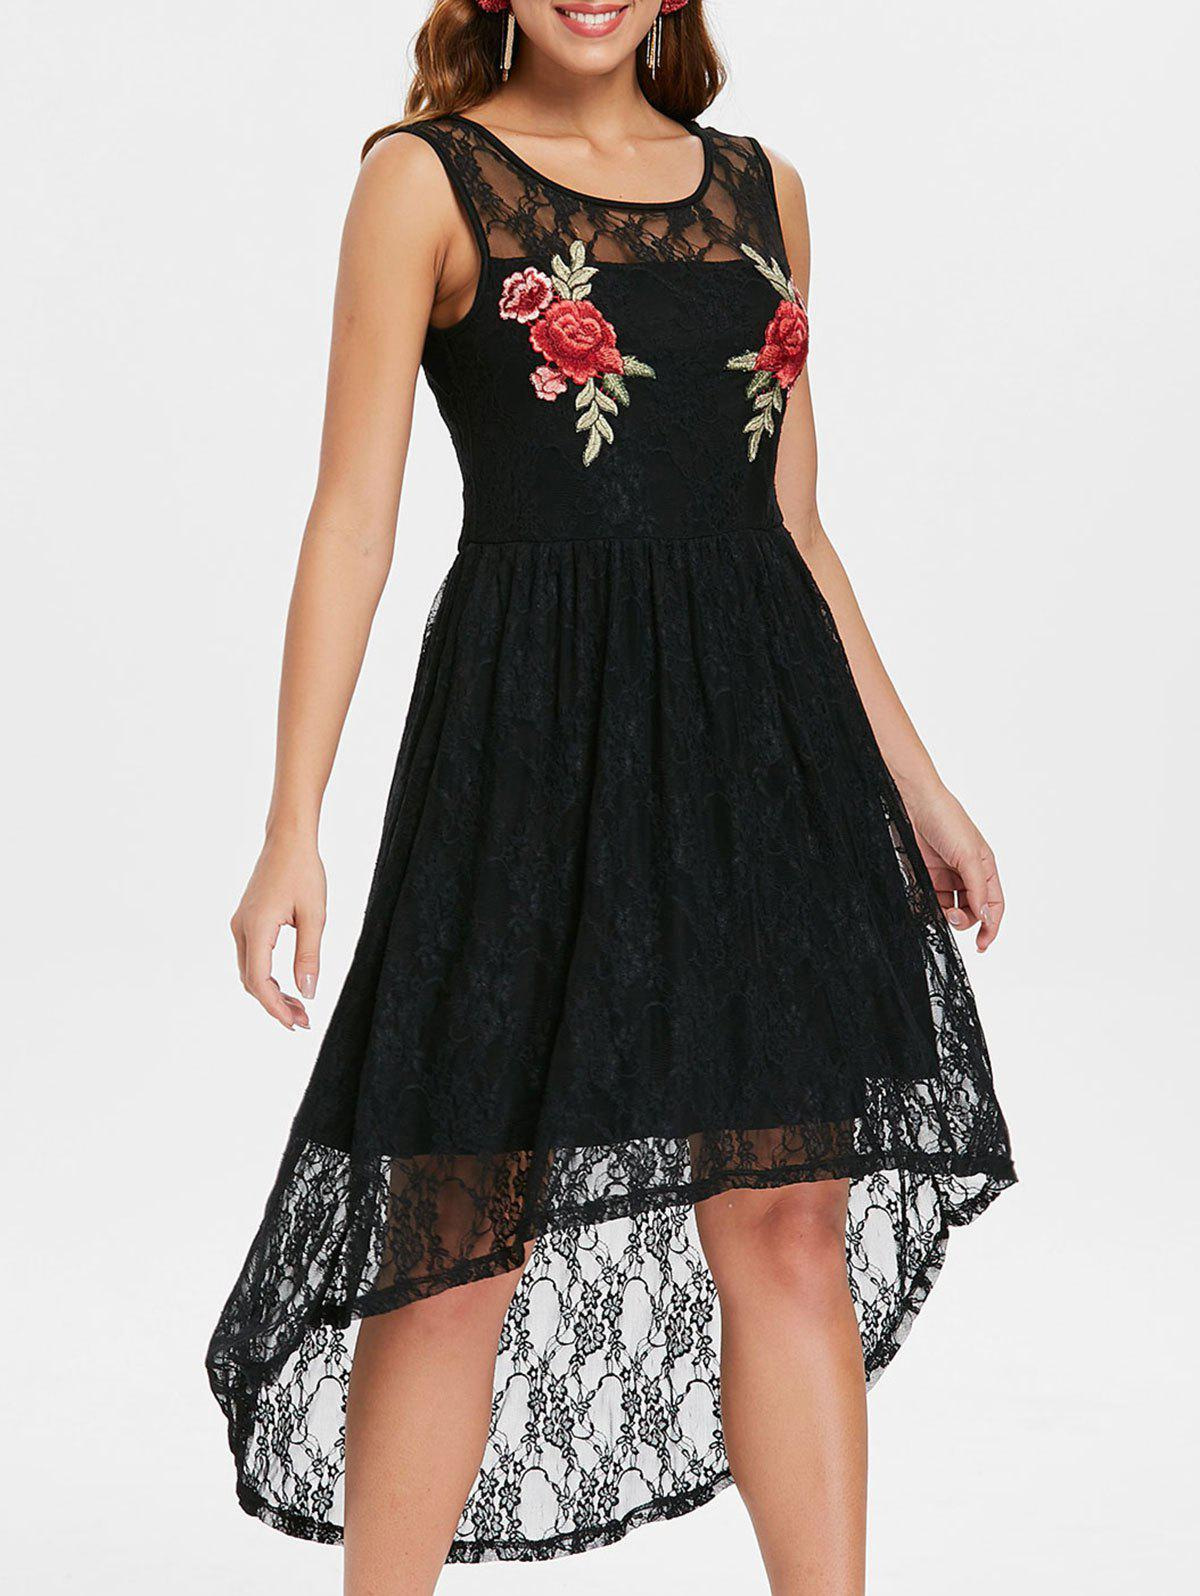 Store Flowered Embroidery High Low Lace Dress